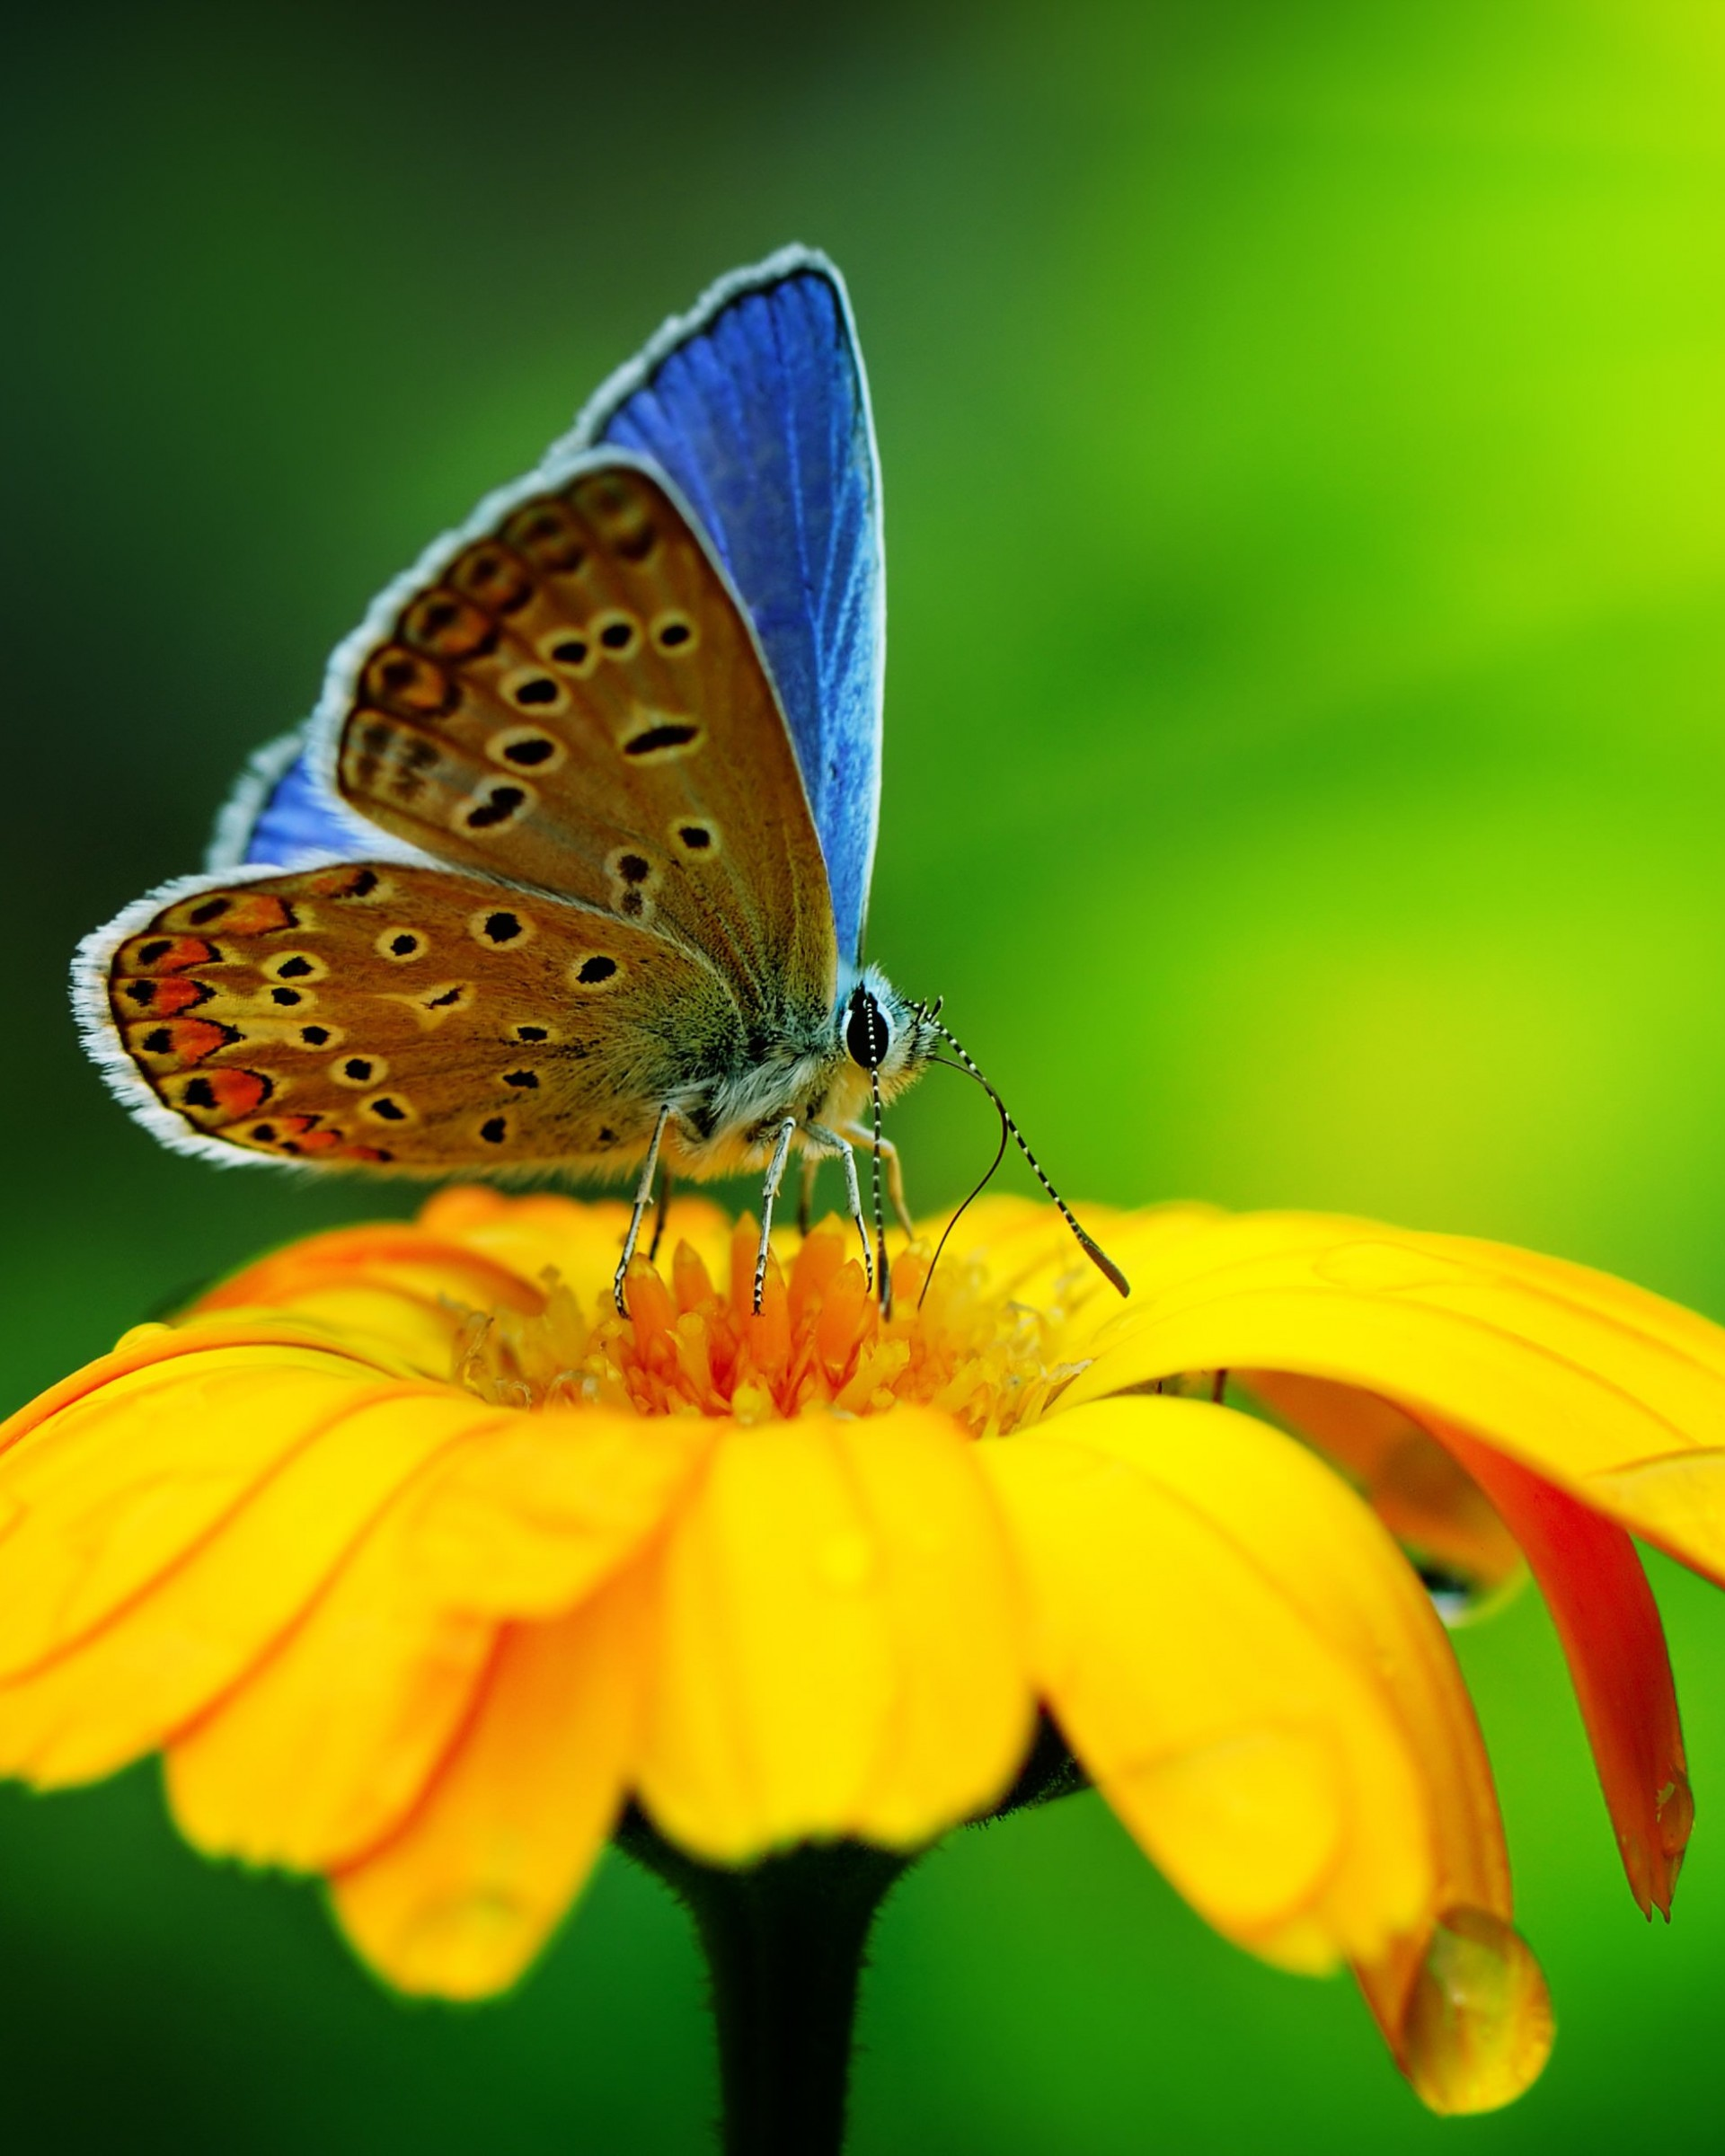 Butterfly Collecting Pollen Wallpaper for Google Nexus 7